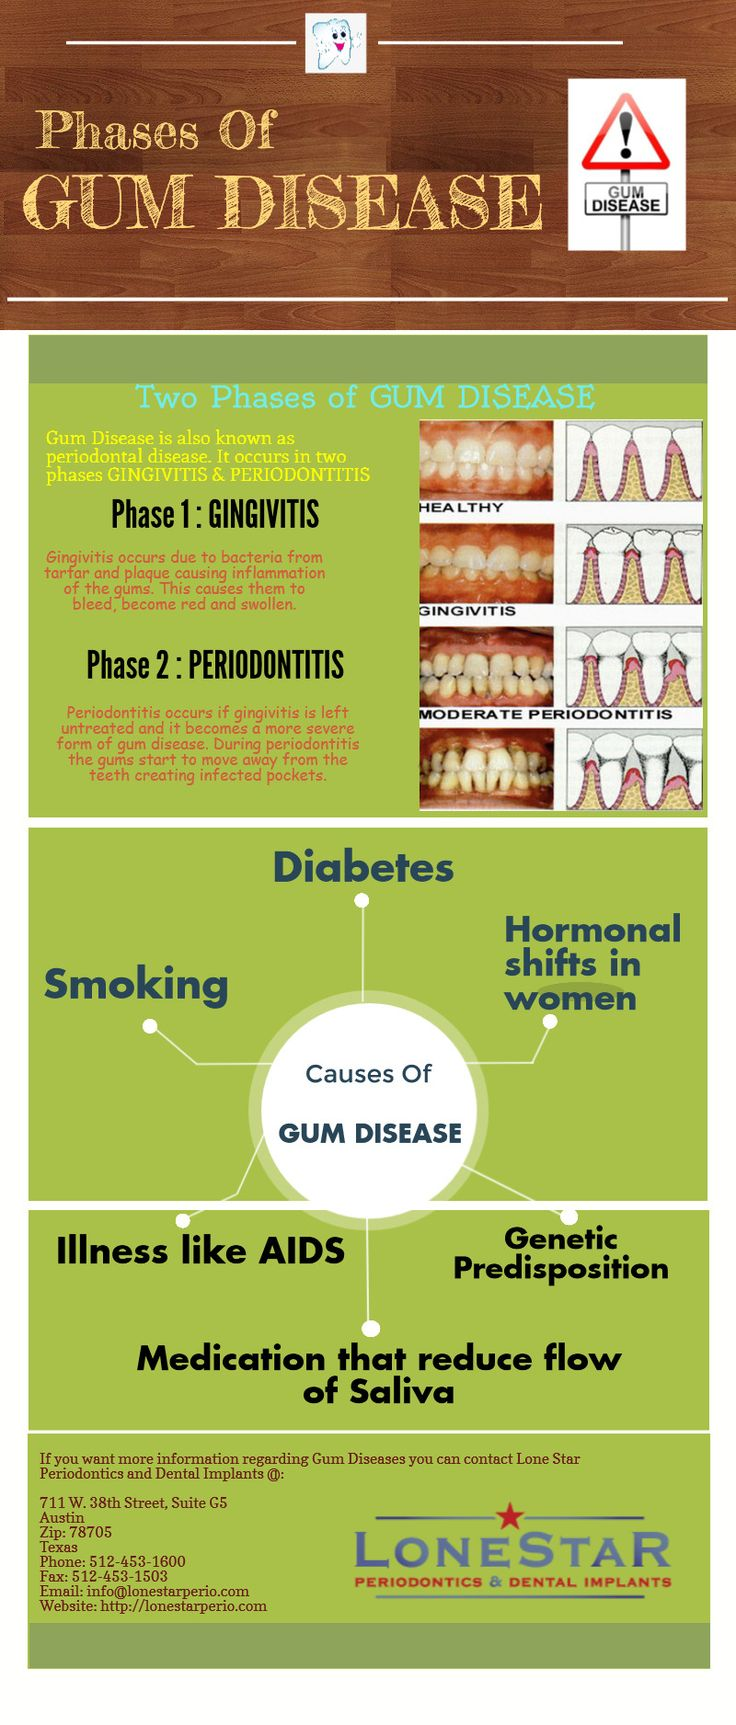 Use this infographic to get useful information about gum disease, its phases and also the main causes of gum disease.